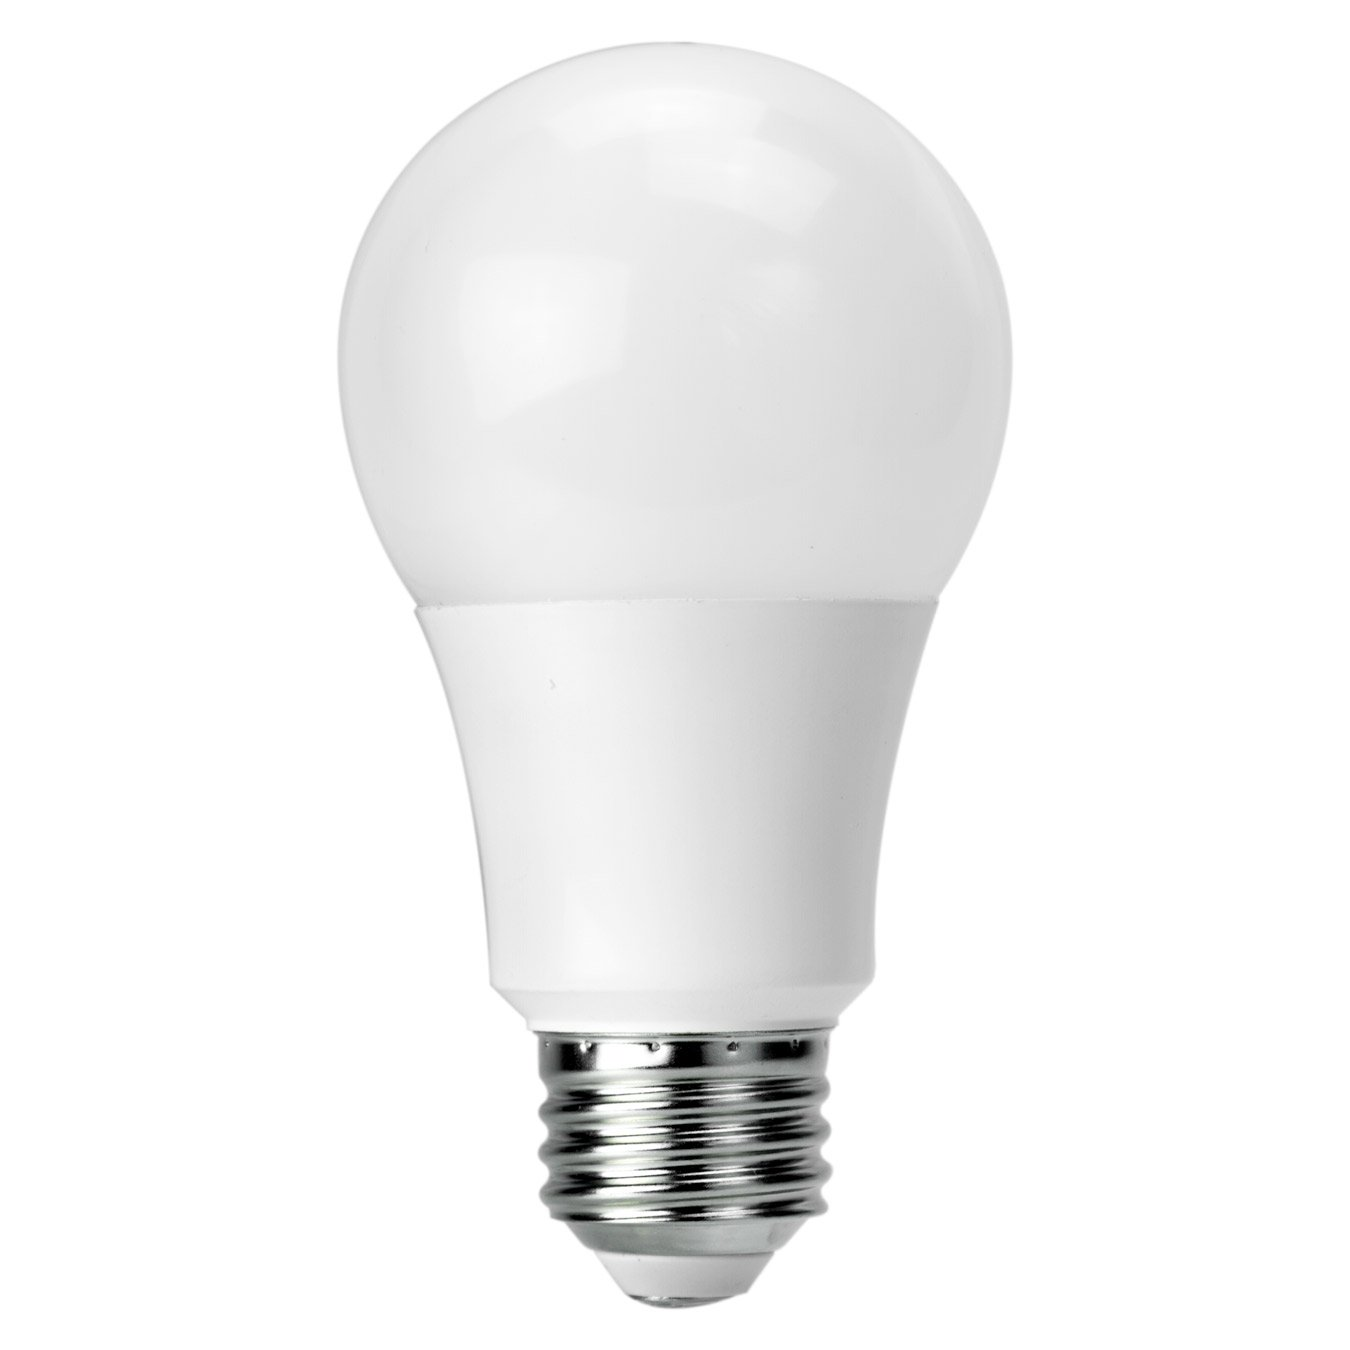 10 Pack LED Omnidirectional A19 Multi-Voltage 8.5W (60W Equivalent) Non-Dimmable 4000K 850L 120-277V